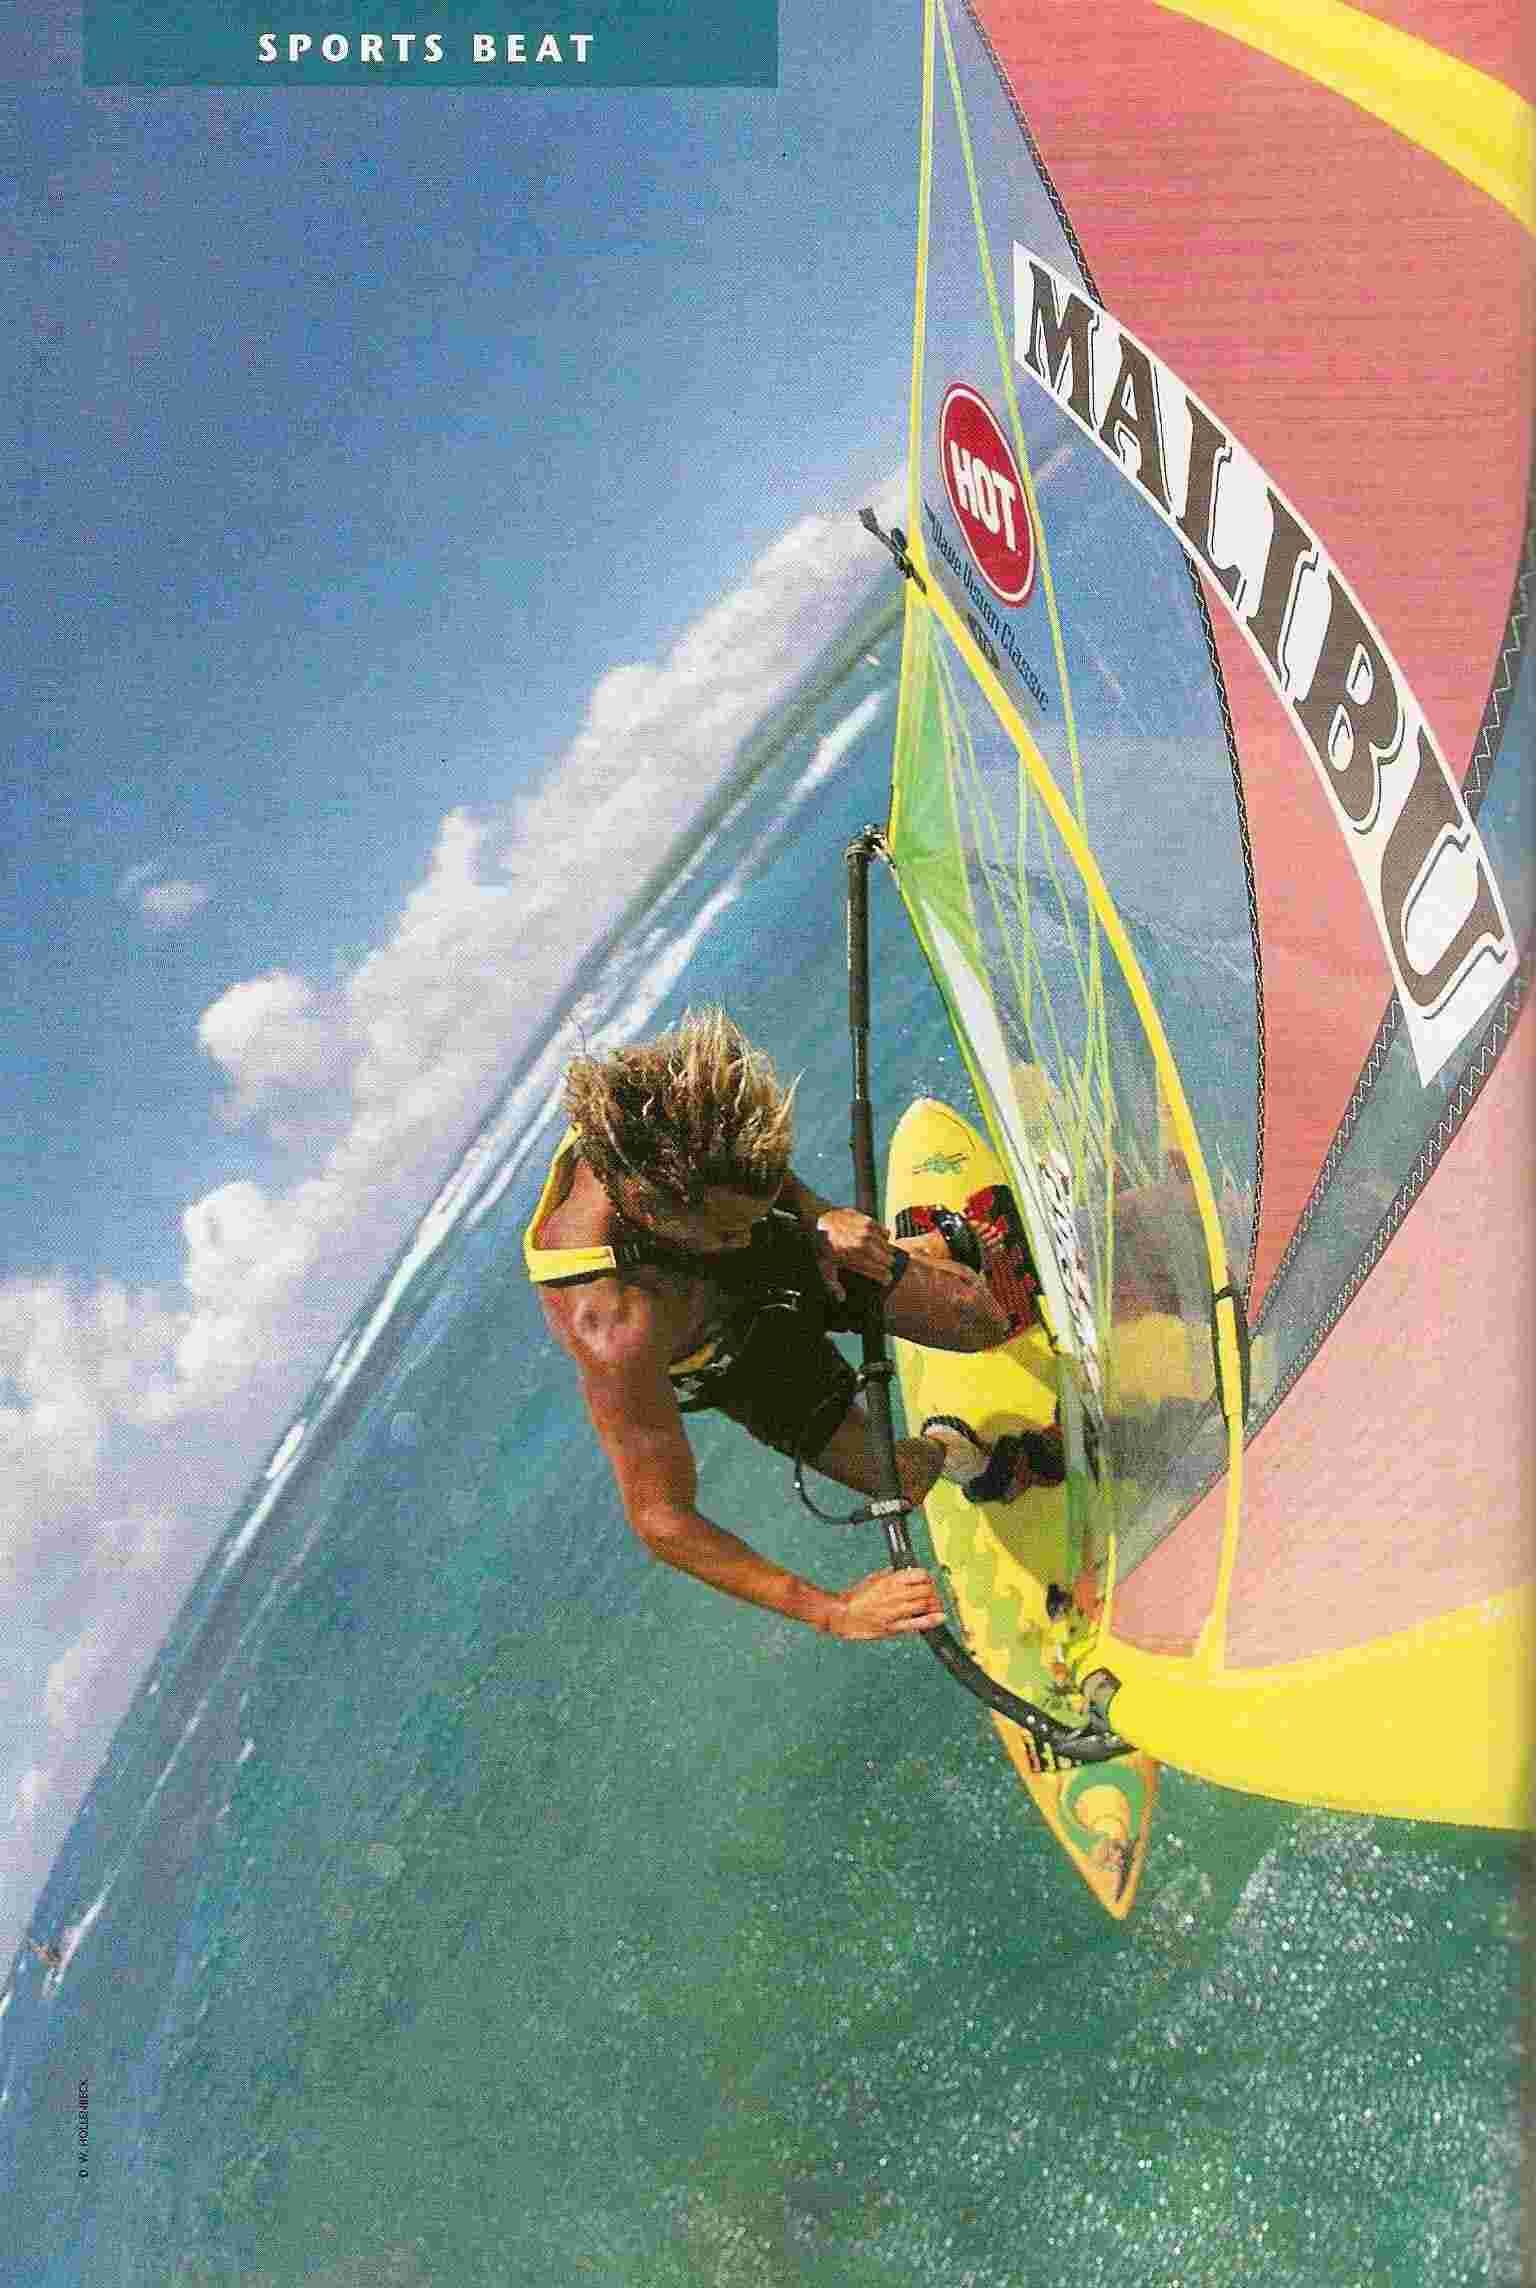 Barbados's Brian Talma ranks among the world's top 20 windsurfers. Photograph by D.W. Hollenbeck